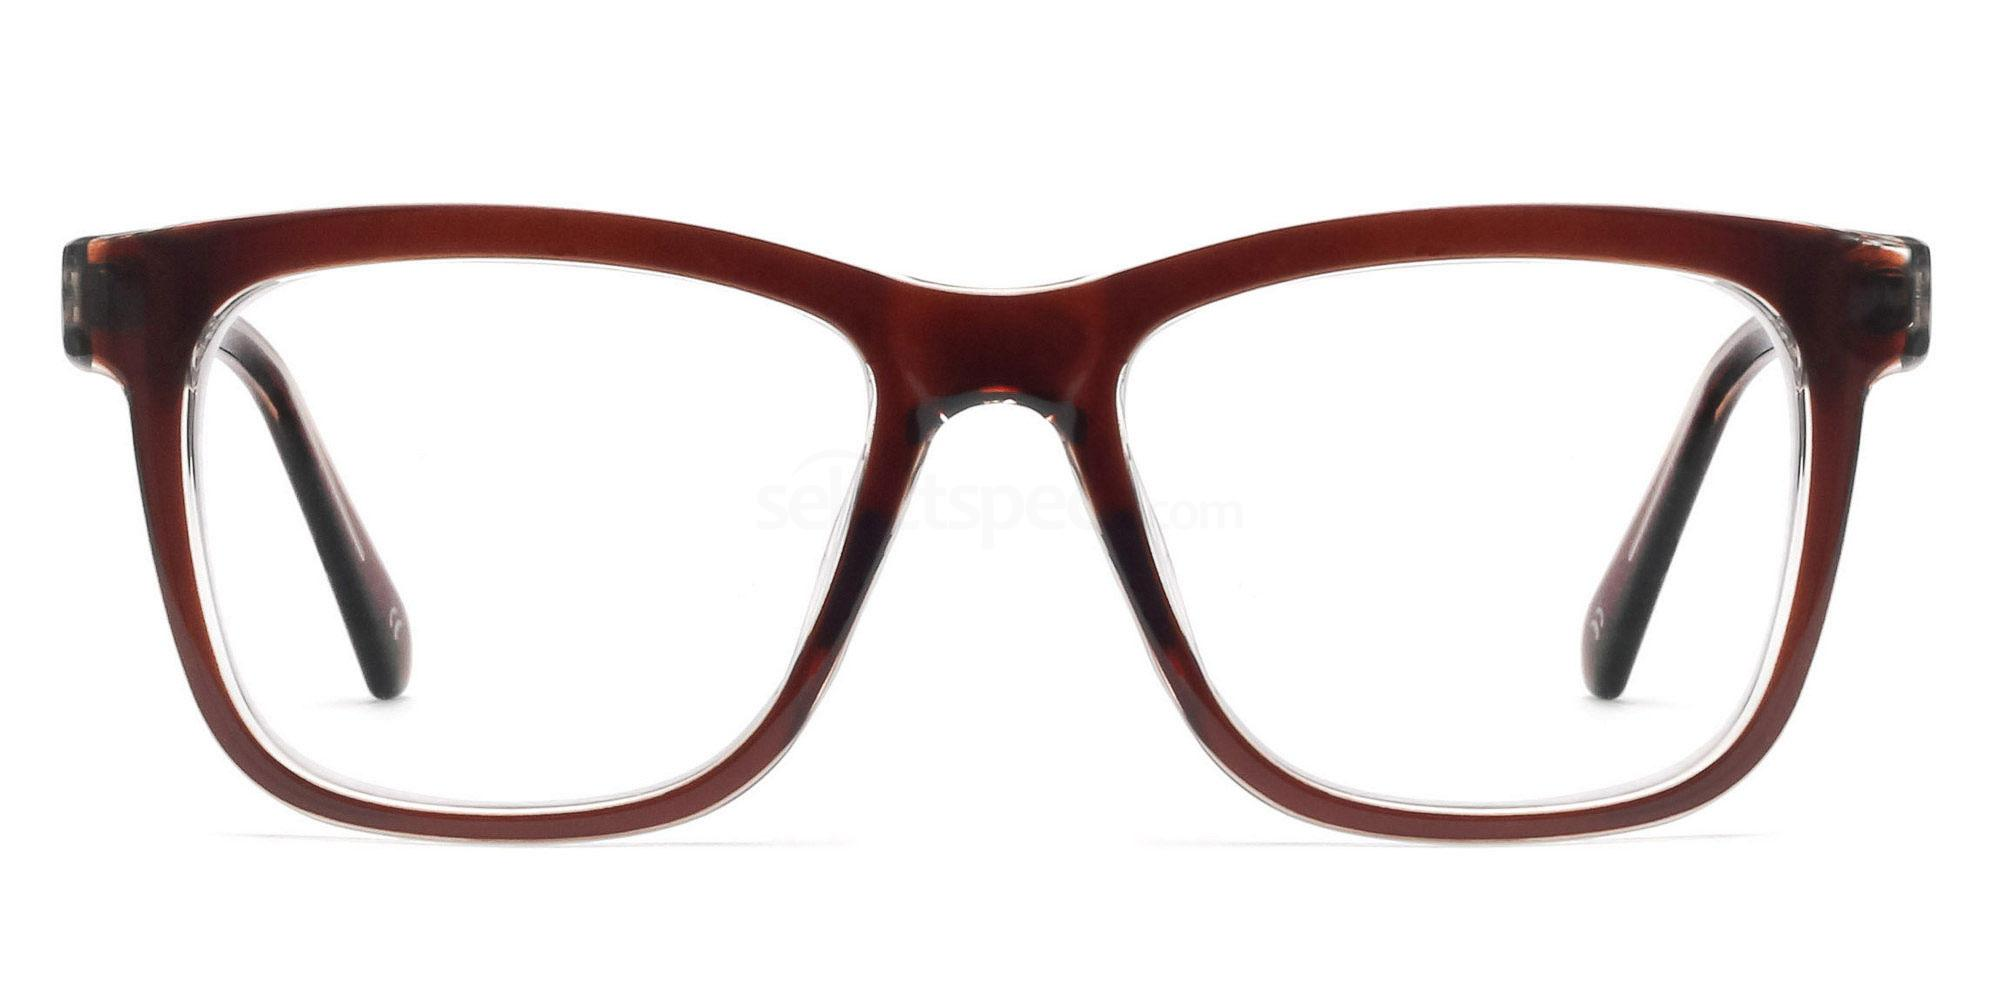 C37 2444 - Brown Glasses, Savannah